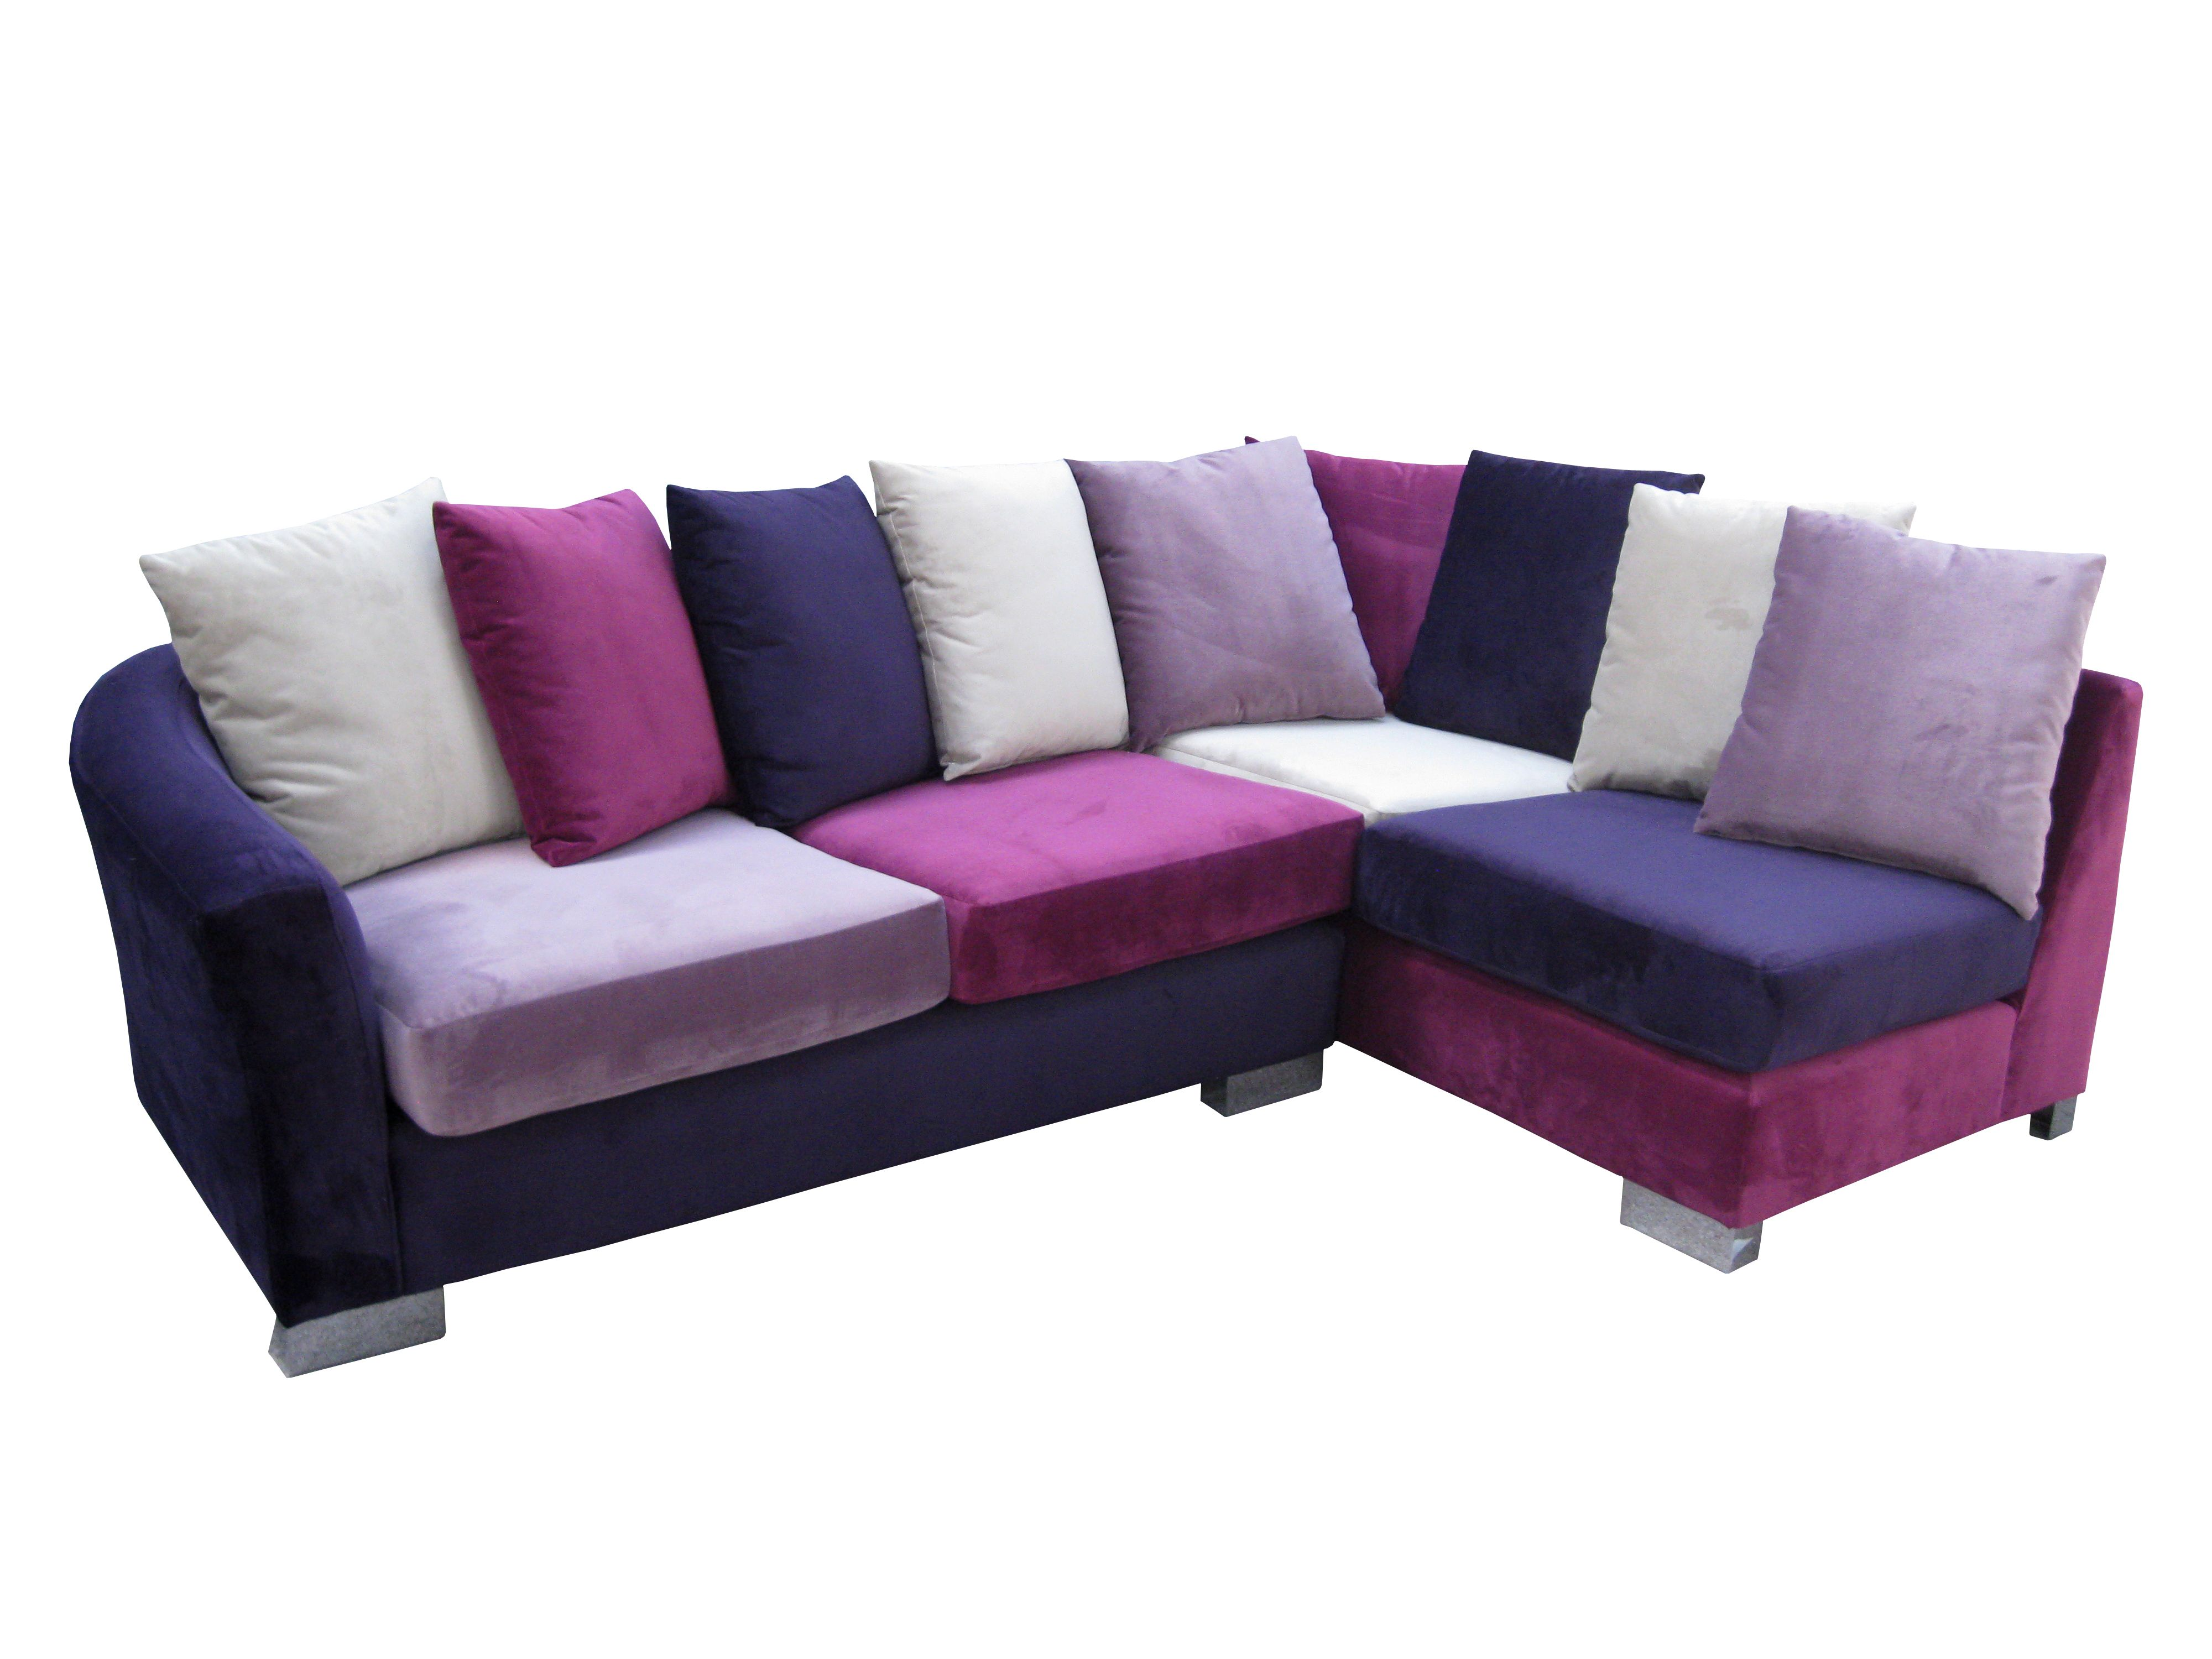 Innovation Sofa Bed Gumtree Convert A Couch And Multi Coloured Baci Living Room